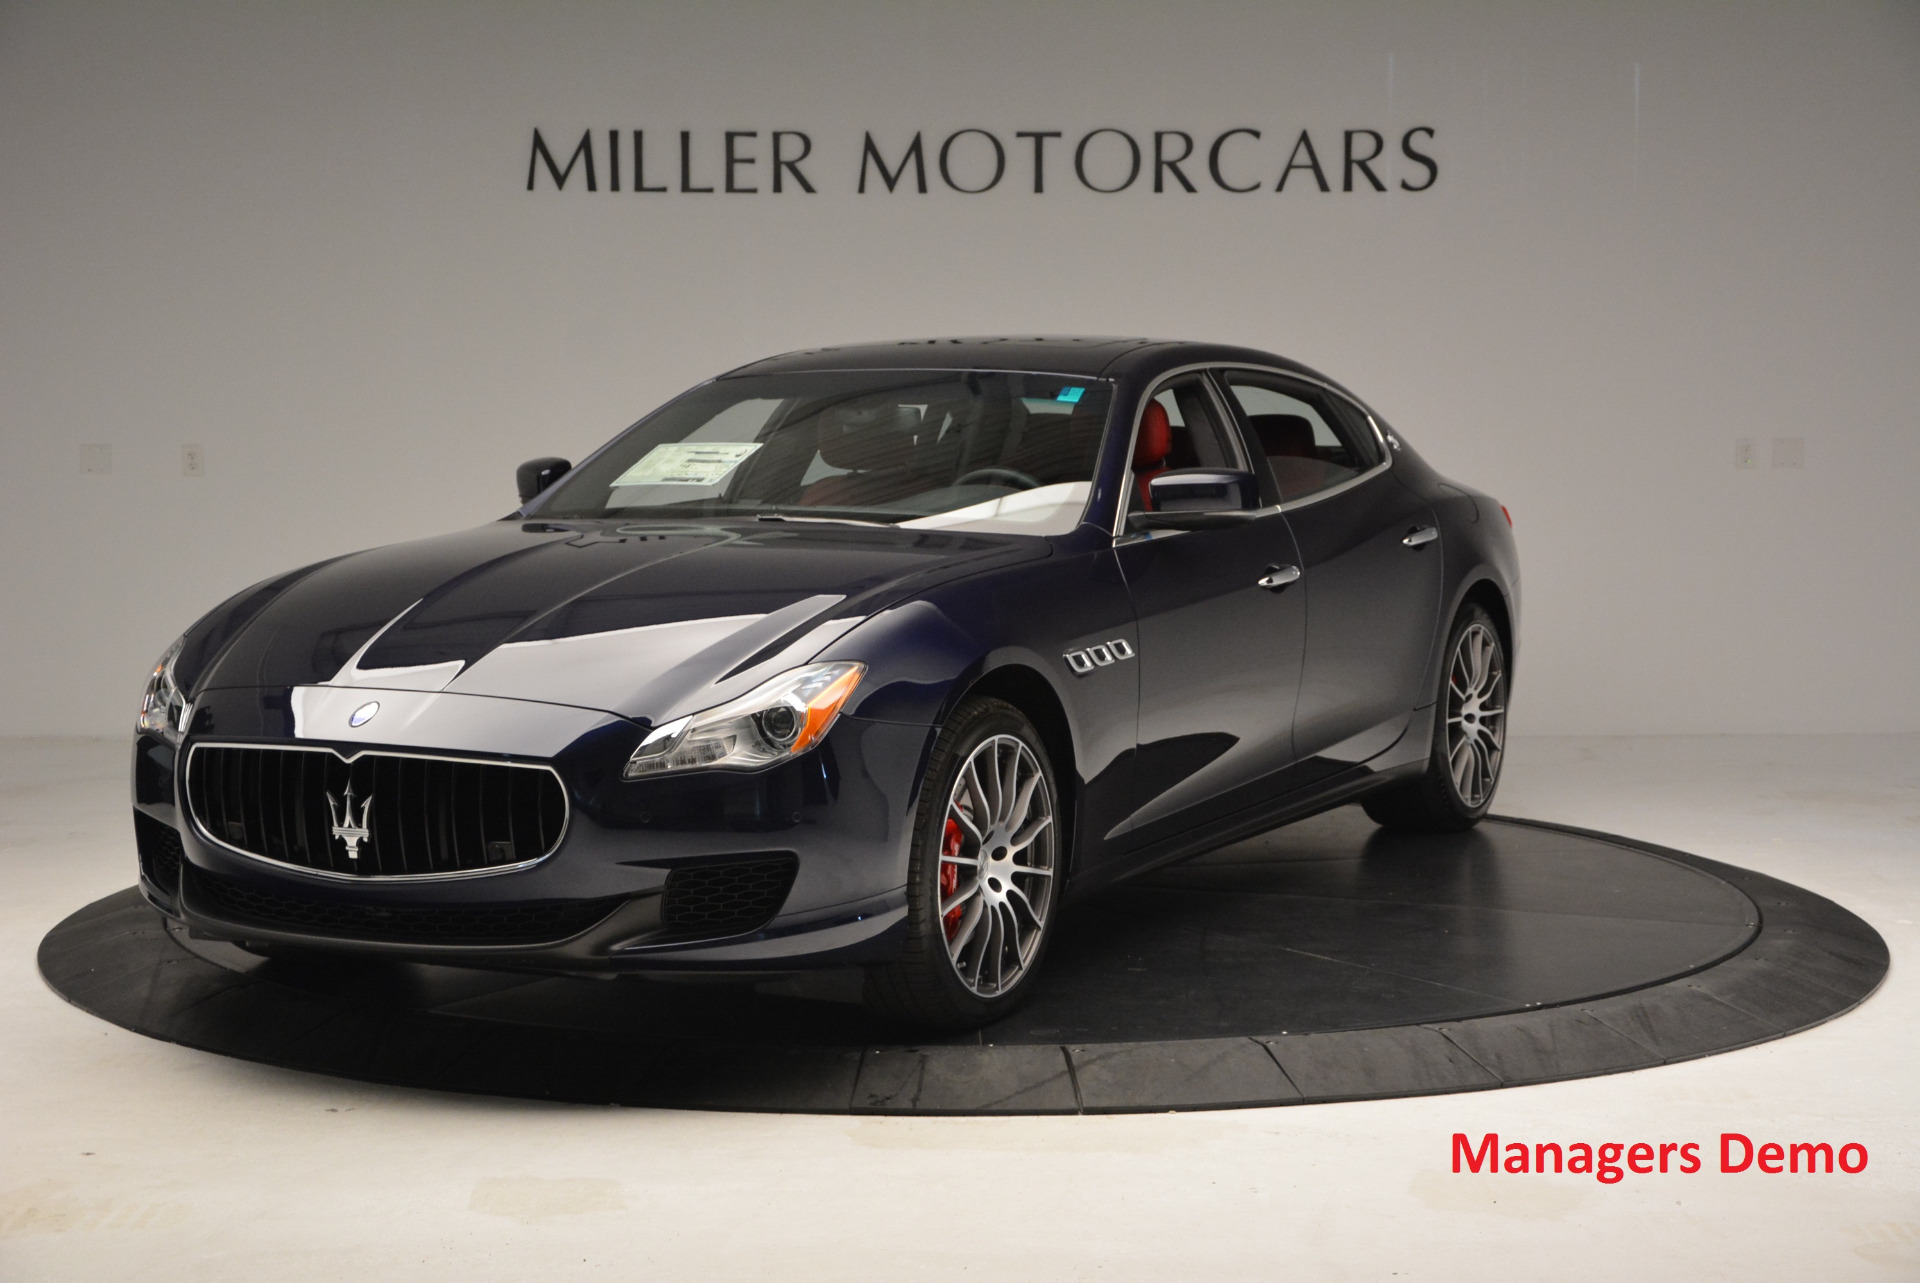 New 2016 Maserati Quattroporte S Q4  *******      DEALER'S  DEMO For Sale In Greenwich, CT 185_main